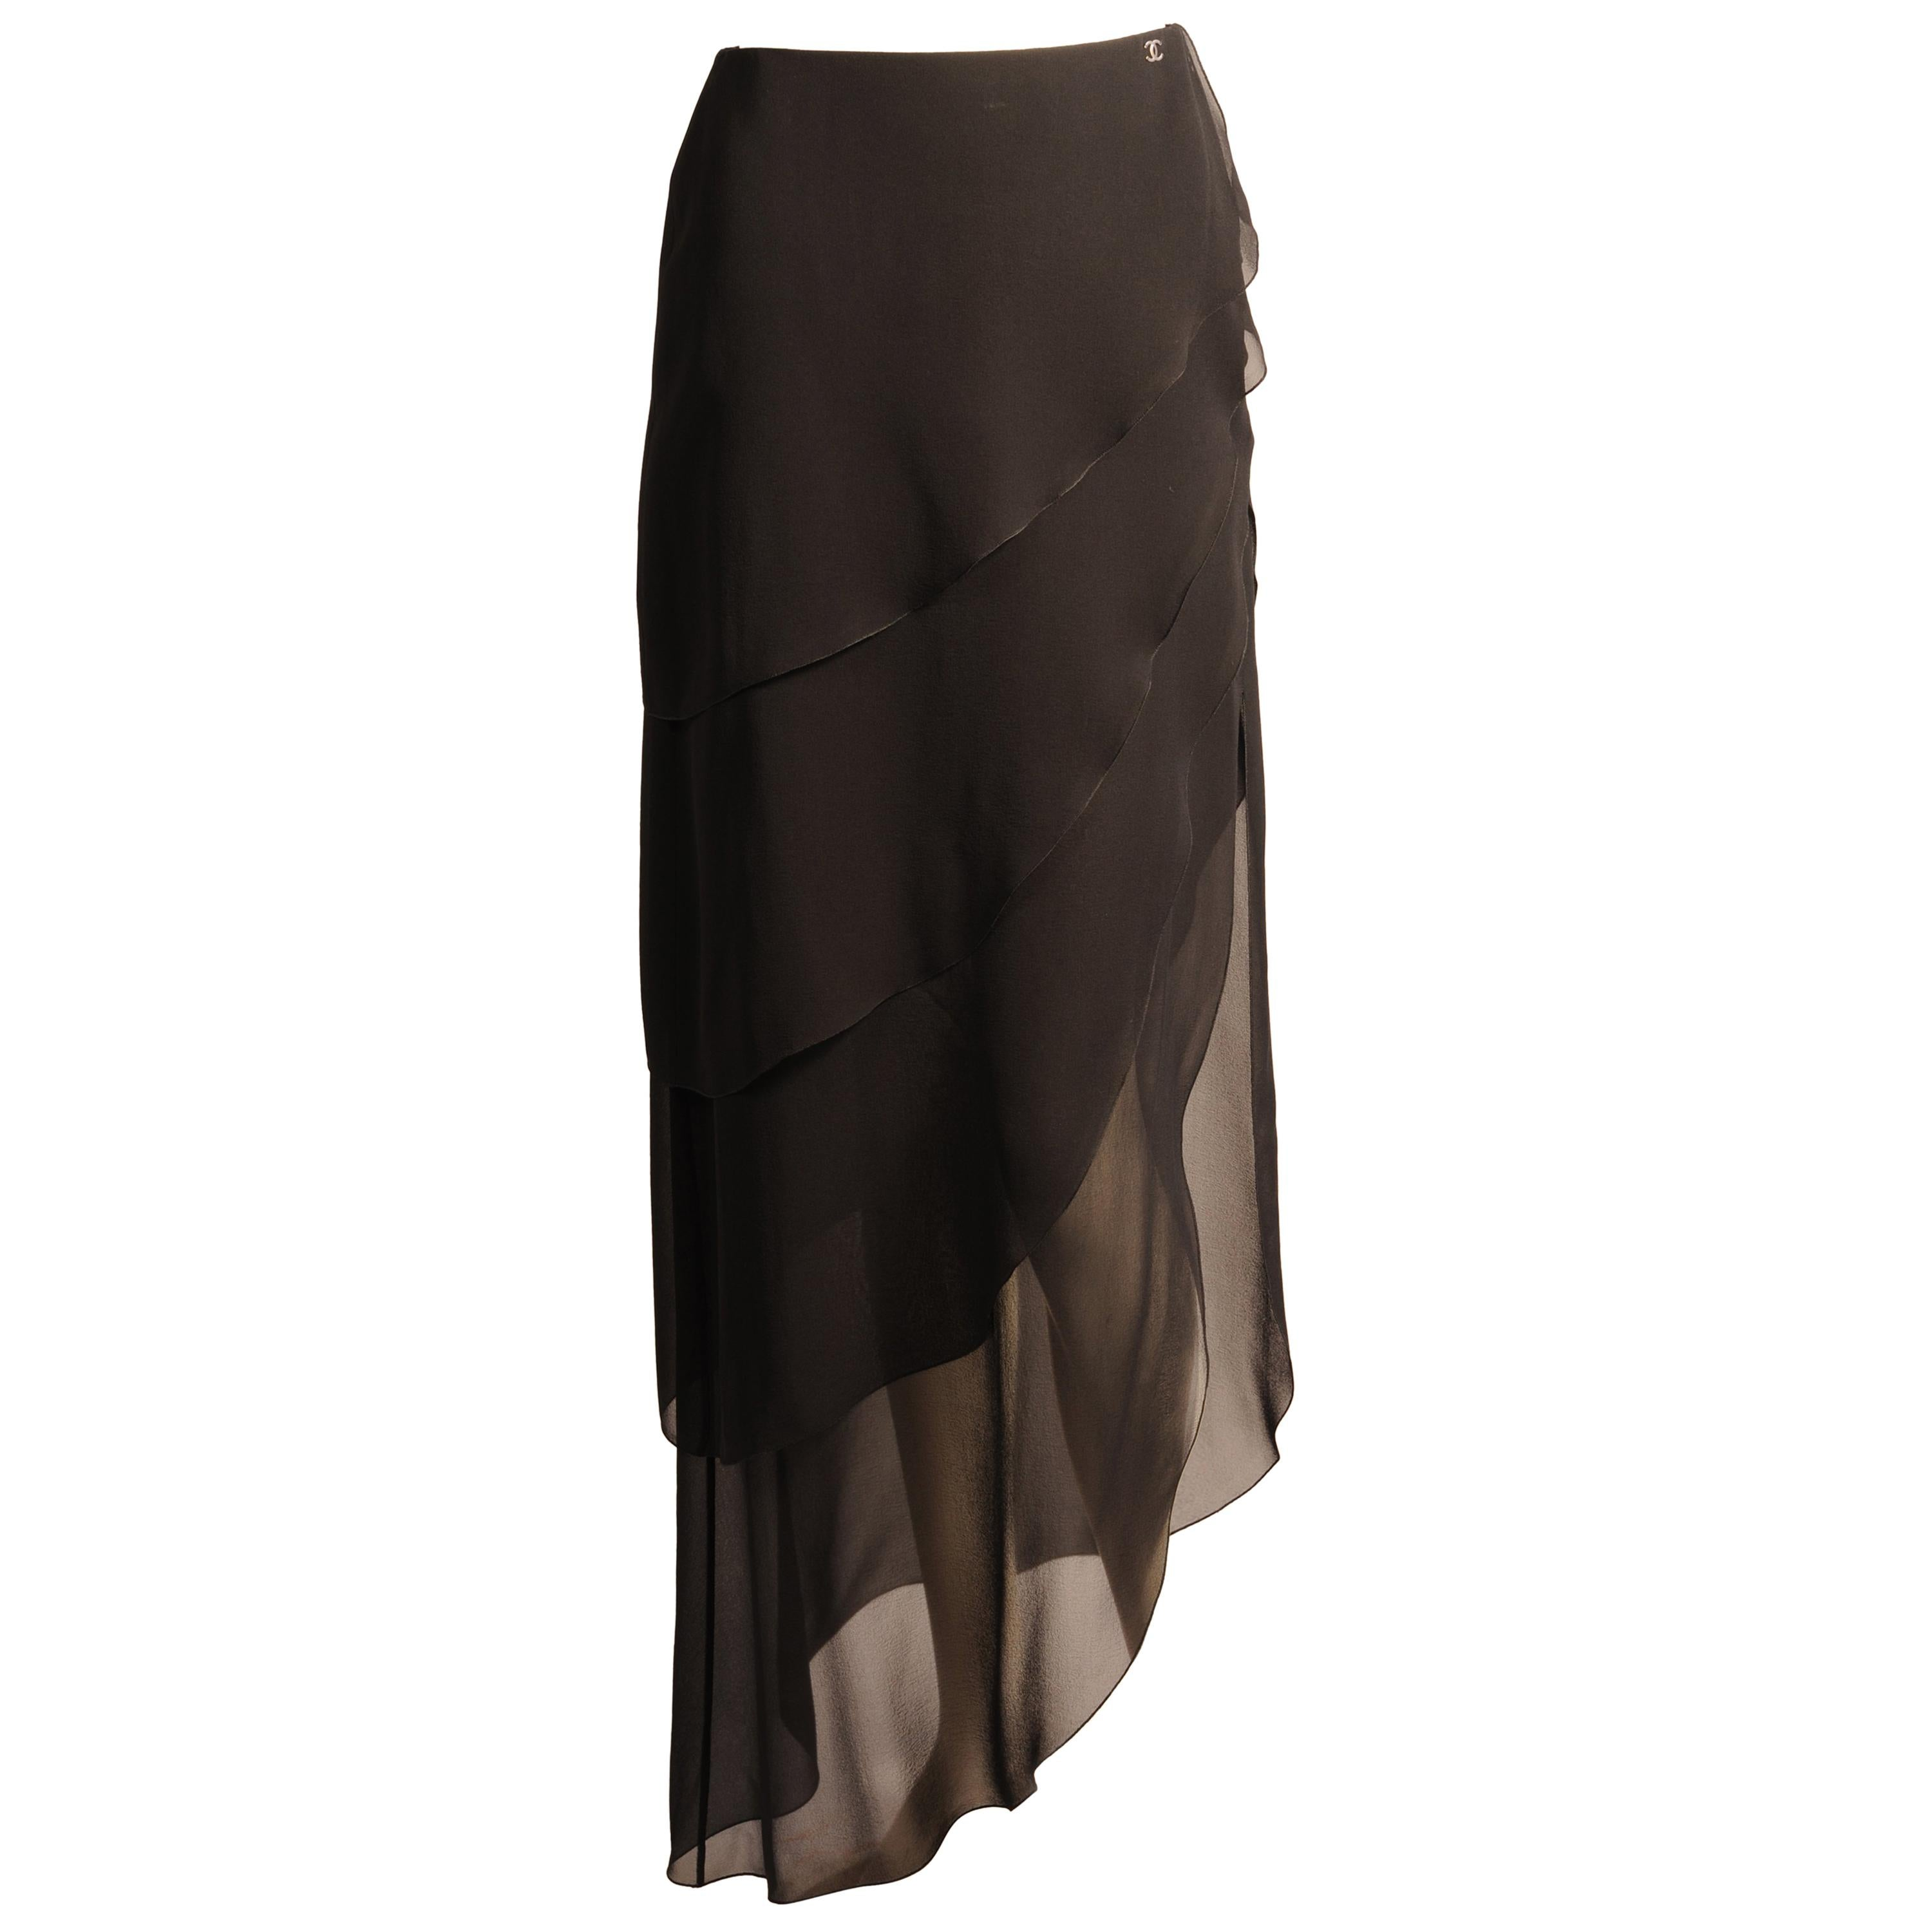 Chanel Black Silk Chiffon Tiered Skirt with High Side Opening